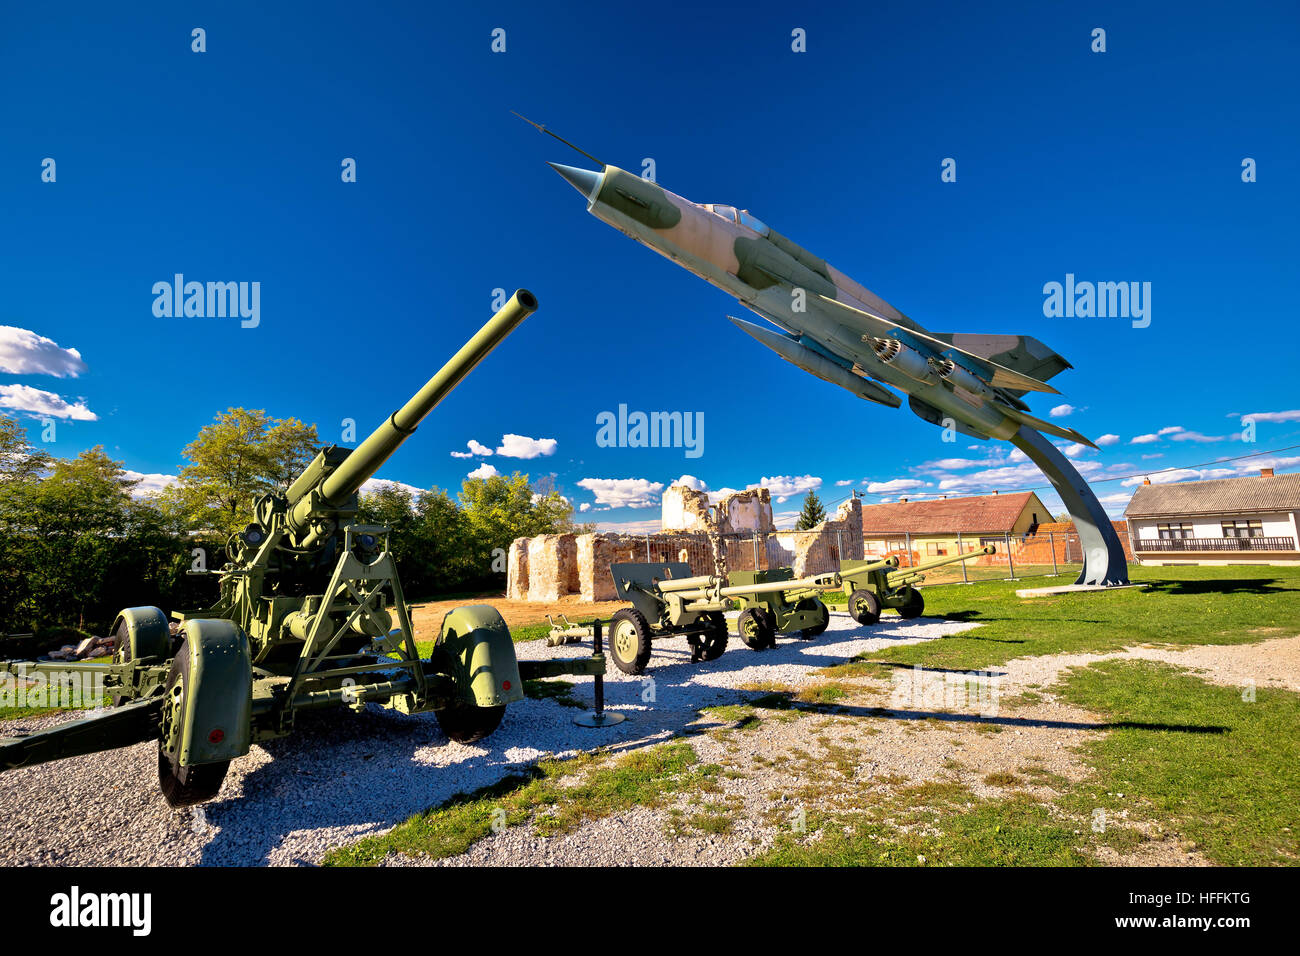 Military cannon and fighter jet with sun rays view, Karlovac, Croatia - Stock Image